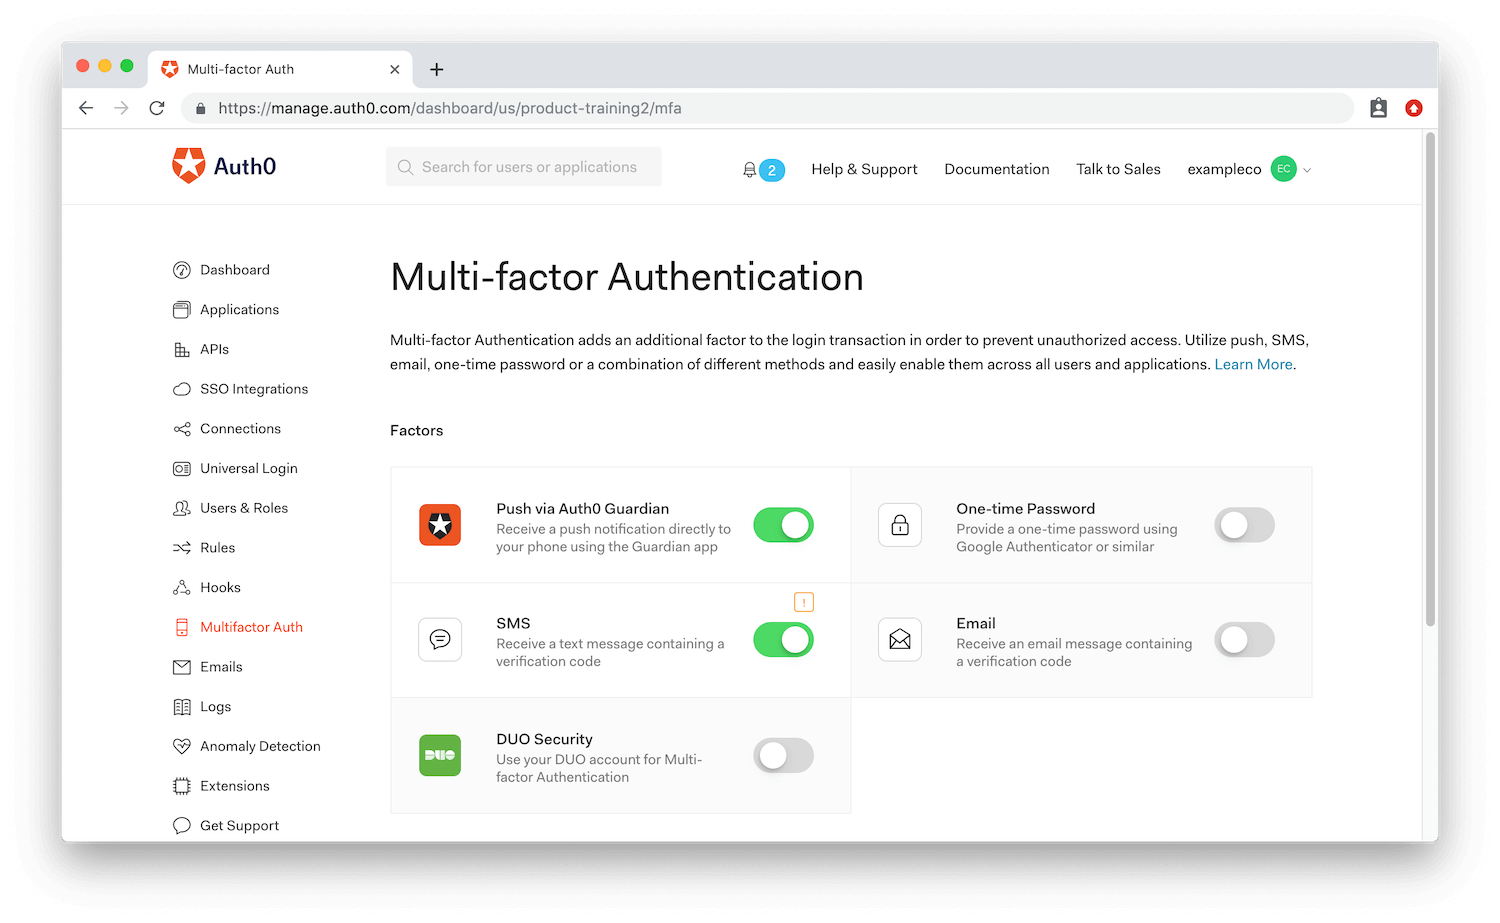 Auth0 Multi-Factor Authentication dashboard with different factors to enable